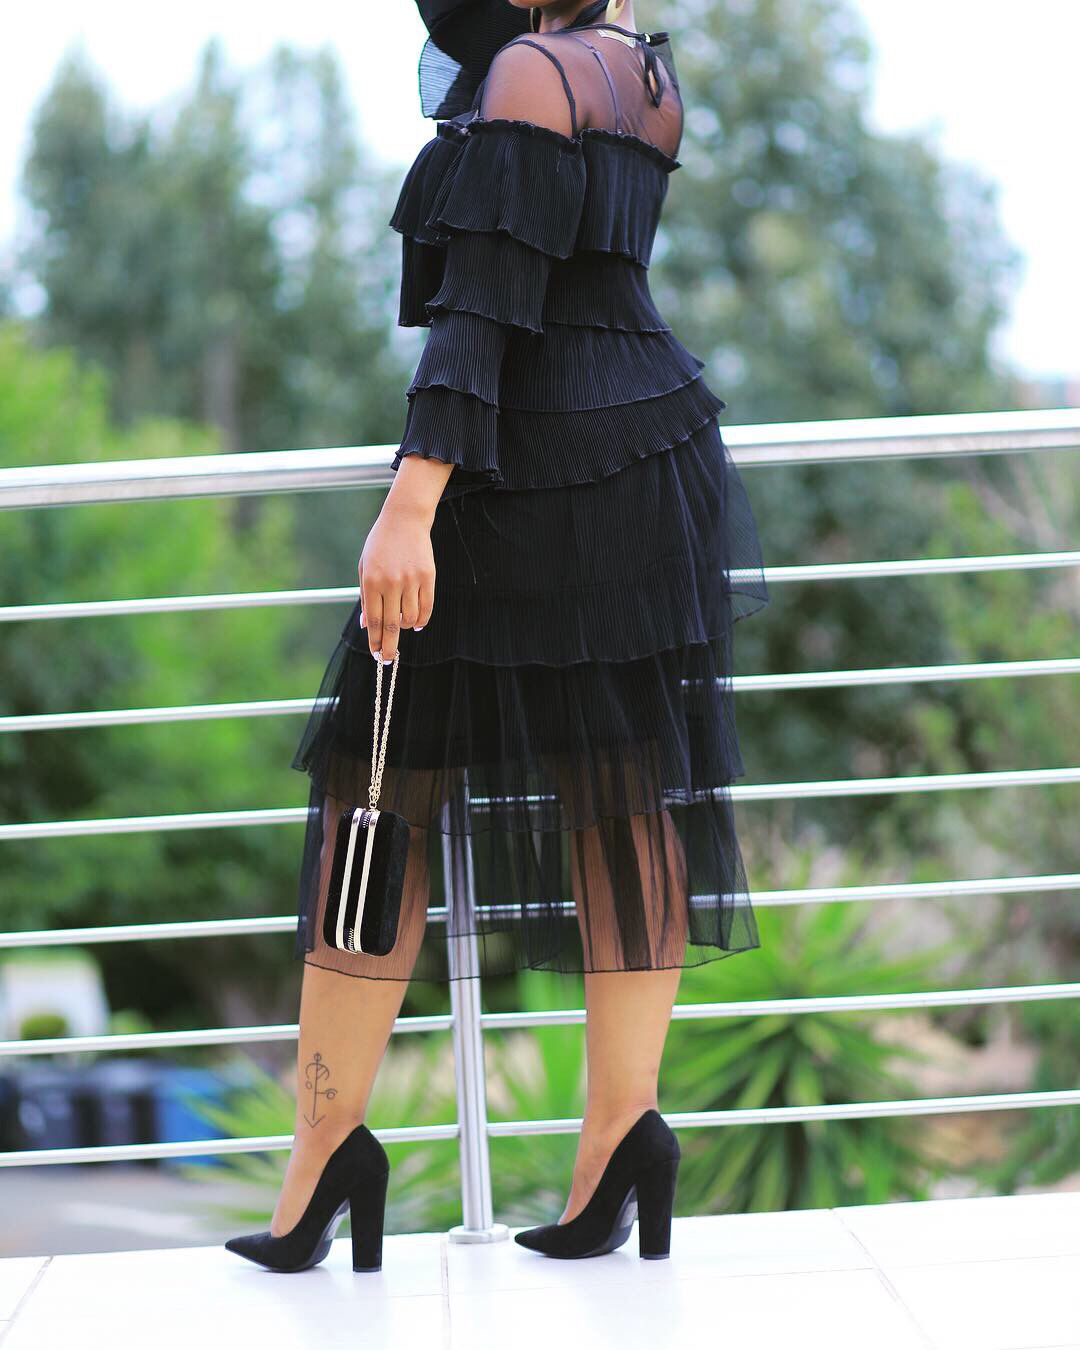 Skirt and top Funeral attire, Womens clothing stores